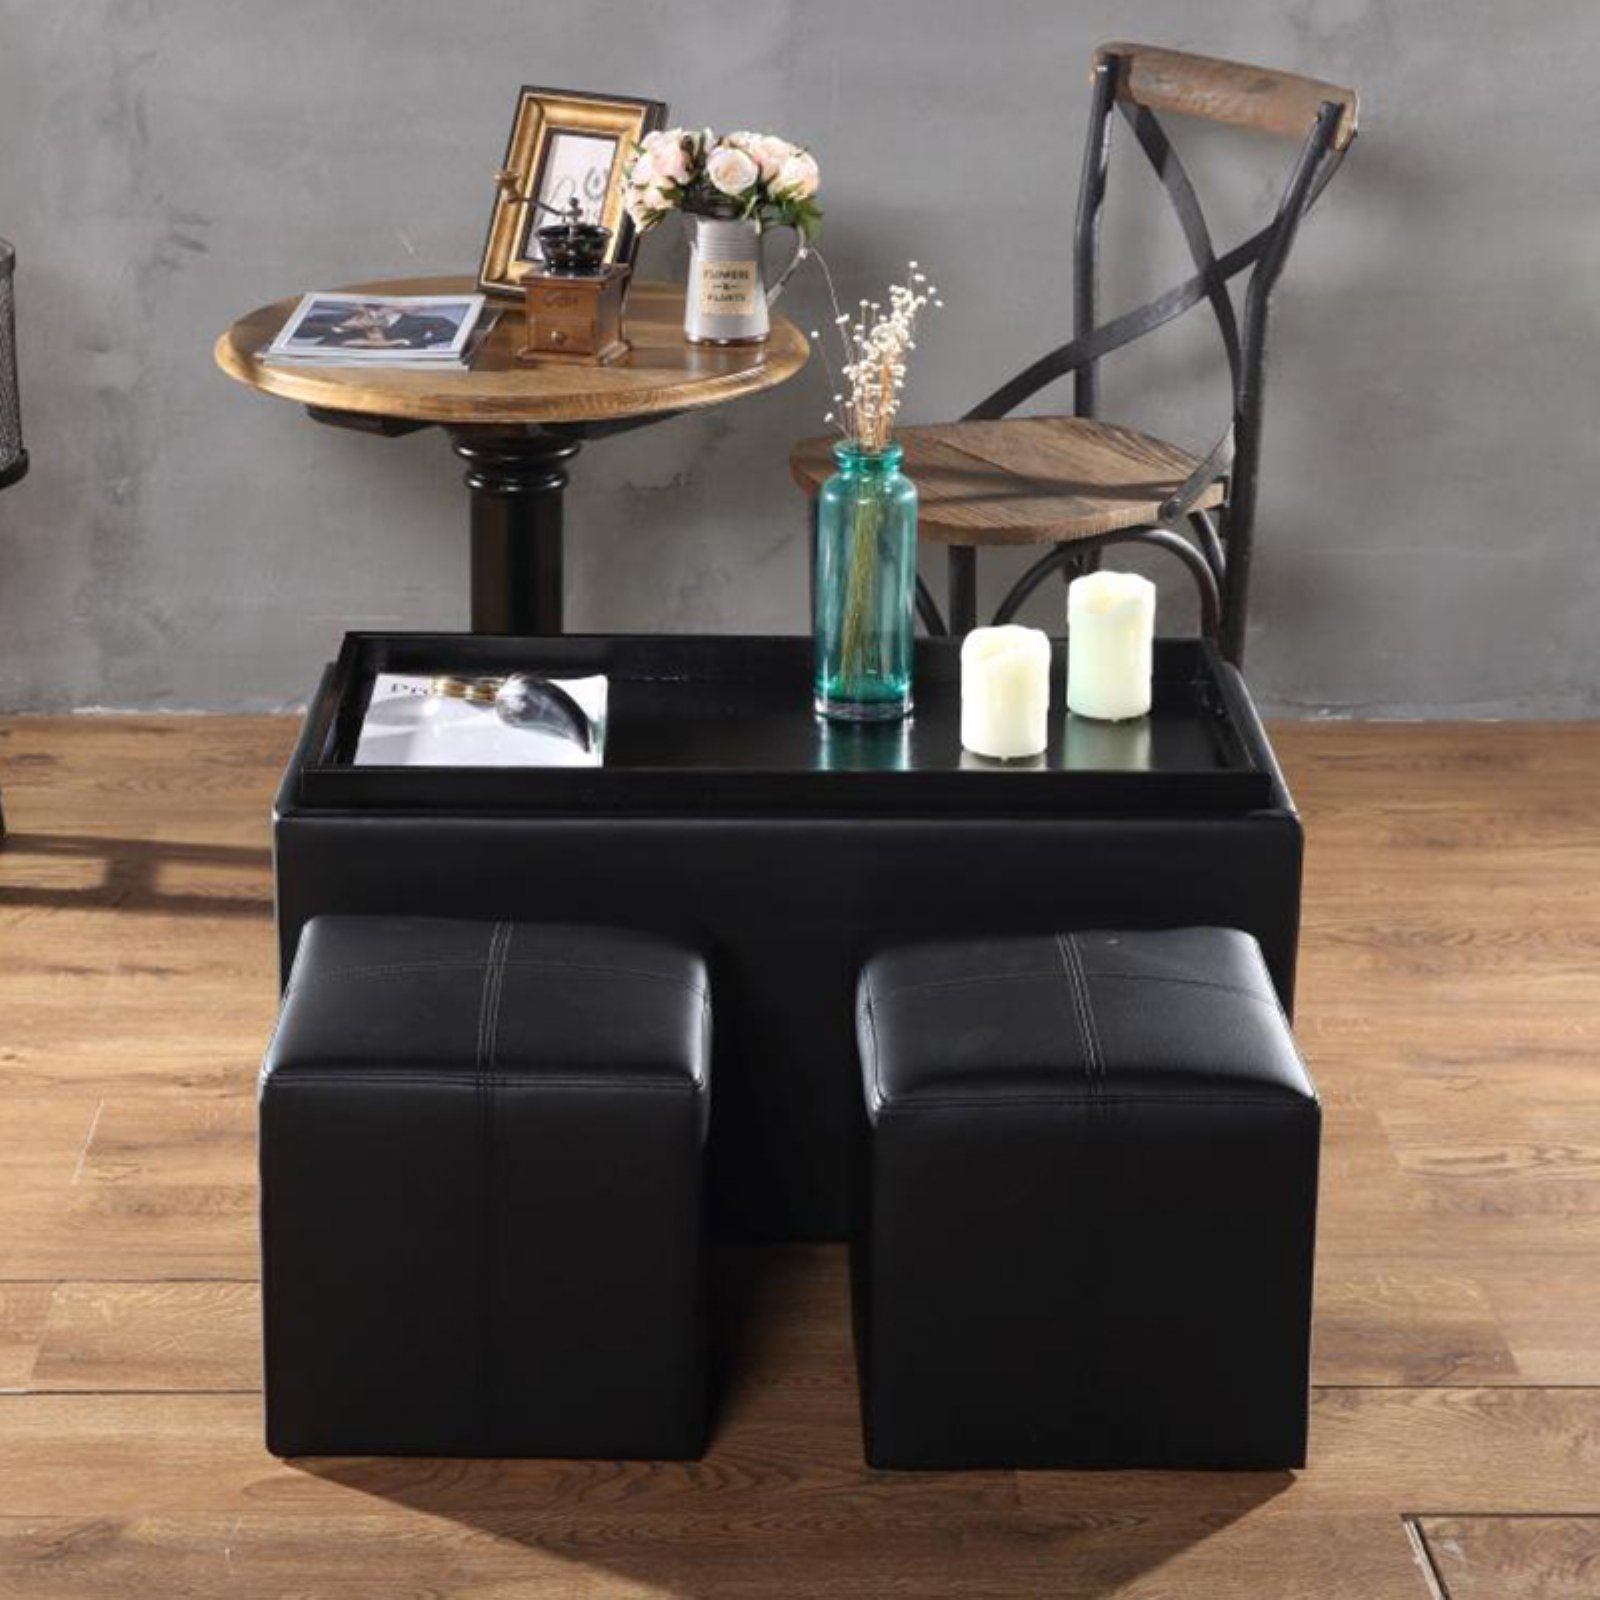 Creative Living 3 Piece Storage Bench and Ottoman Set - Black